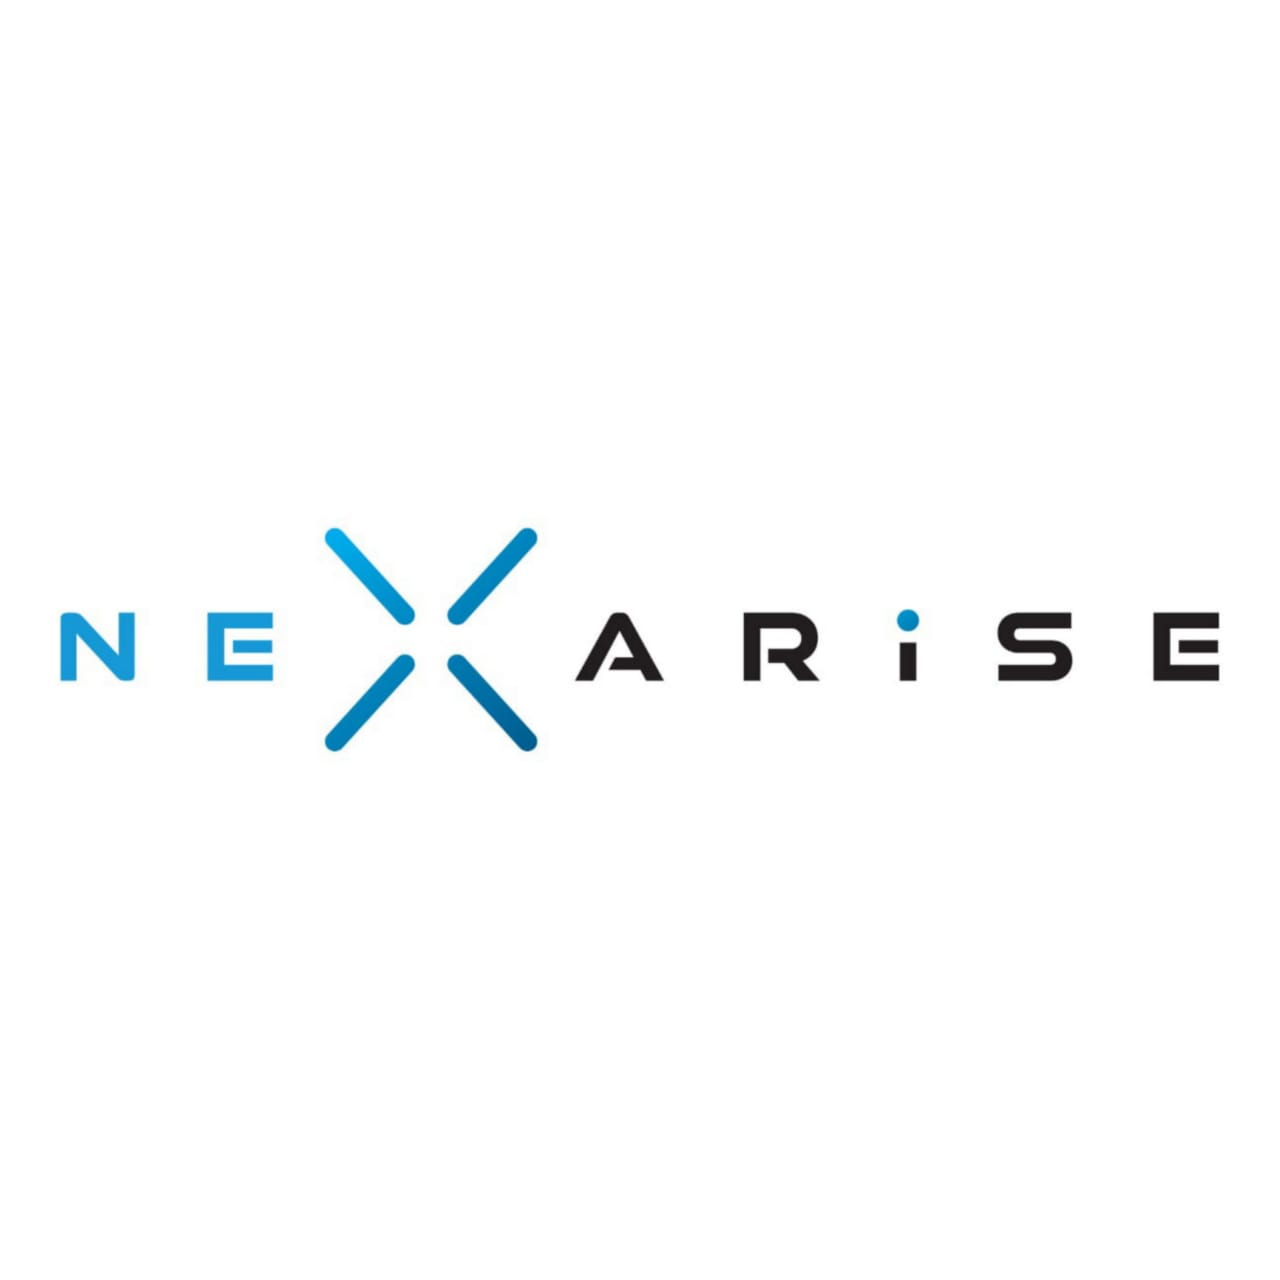 Pandemic? These budding entrepreneurs don't care. They successfully Launched NeXarise